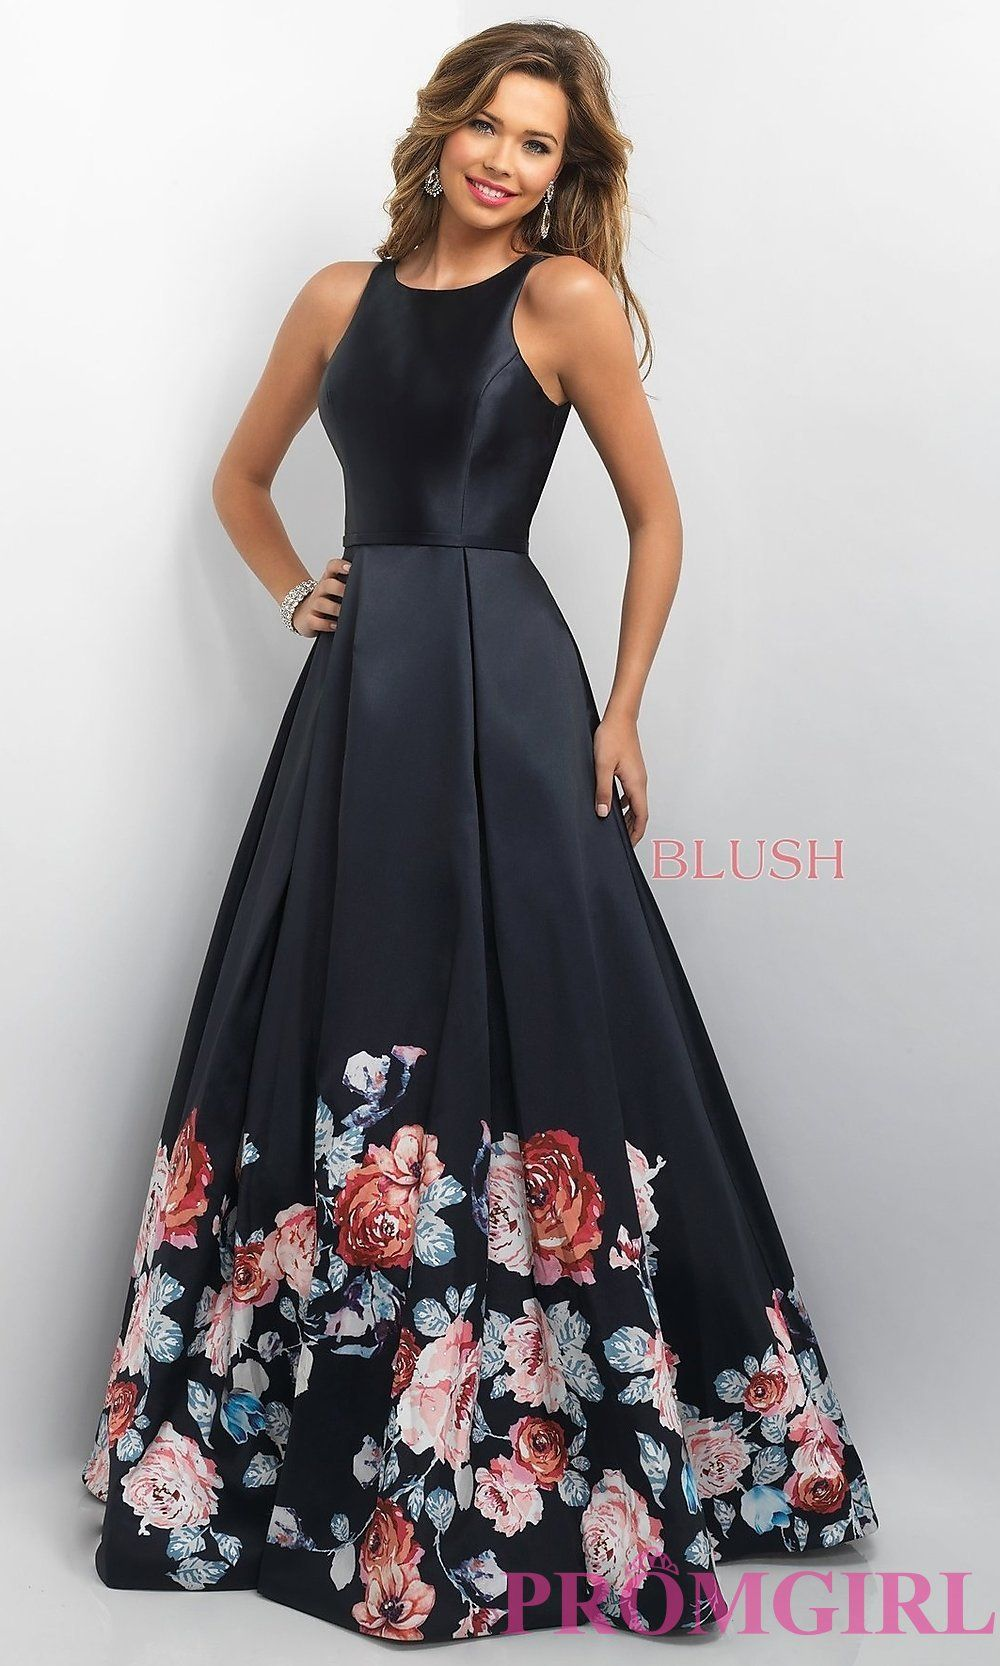 Floral-Print Long Prom Dress by Blush  4a68b77cc4c0